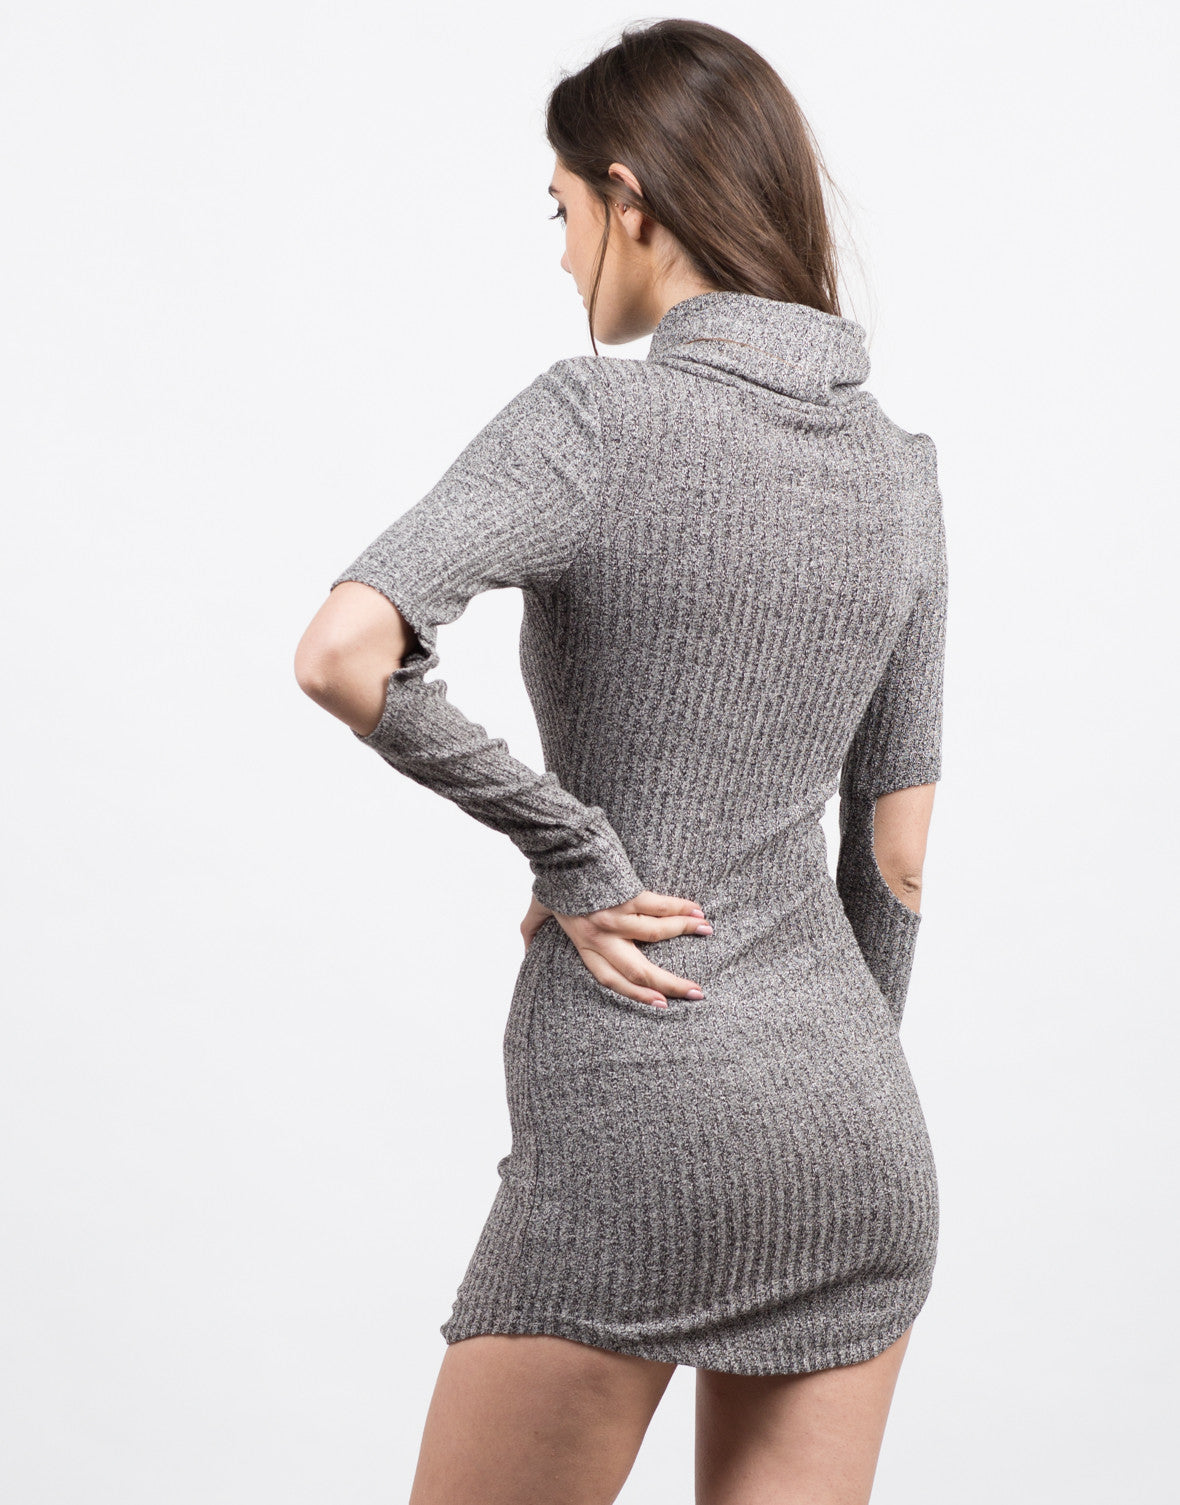 Back View of Cut Up Turtleneck Dress